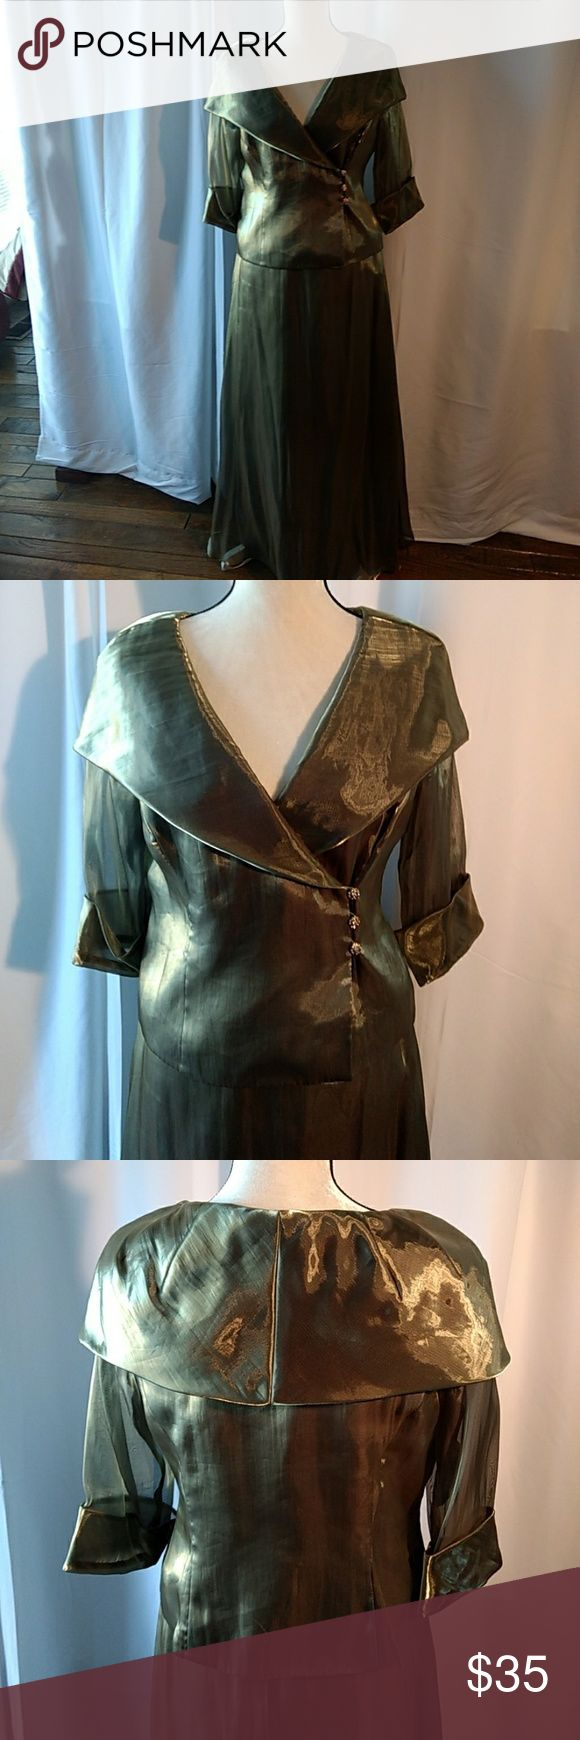 Alex Evening Petite Gorgeous Evening Wear Absolutely gorgeous chiffon two piece evening outfit. Lightweight, excellent condition NSH, great for  New Year's Eve or Christmas Day! Look stunning in this for a fraction of original cost. Alex Evenings Other